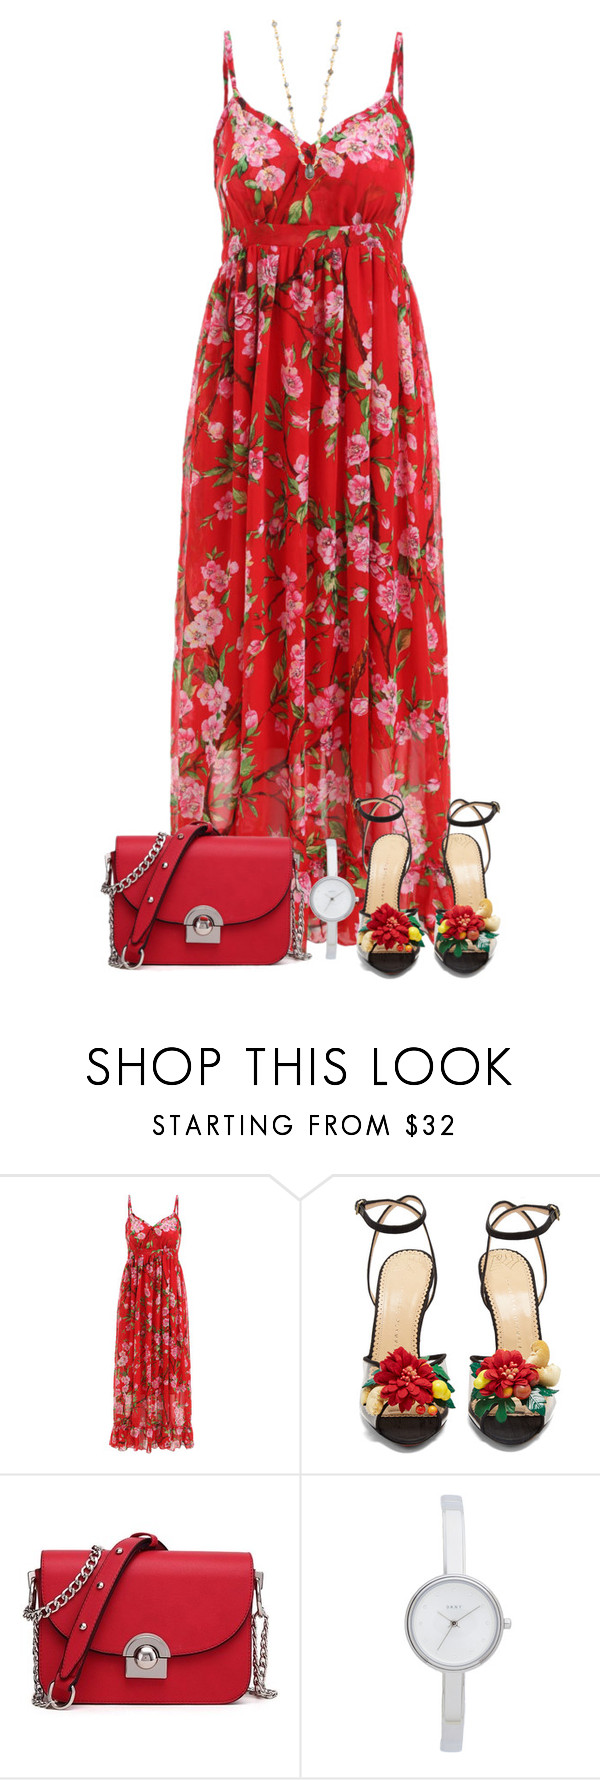 """""""// 9 . 04 . 17 . //"""" by alicefalina ❤ liked on Polyvore featuring Charlotte Olympia, DKNY and Ela Rae"""